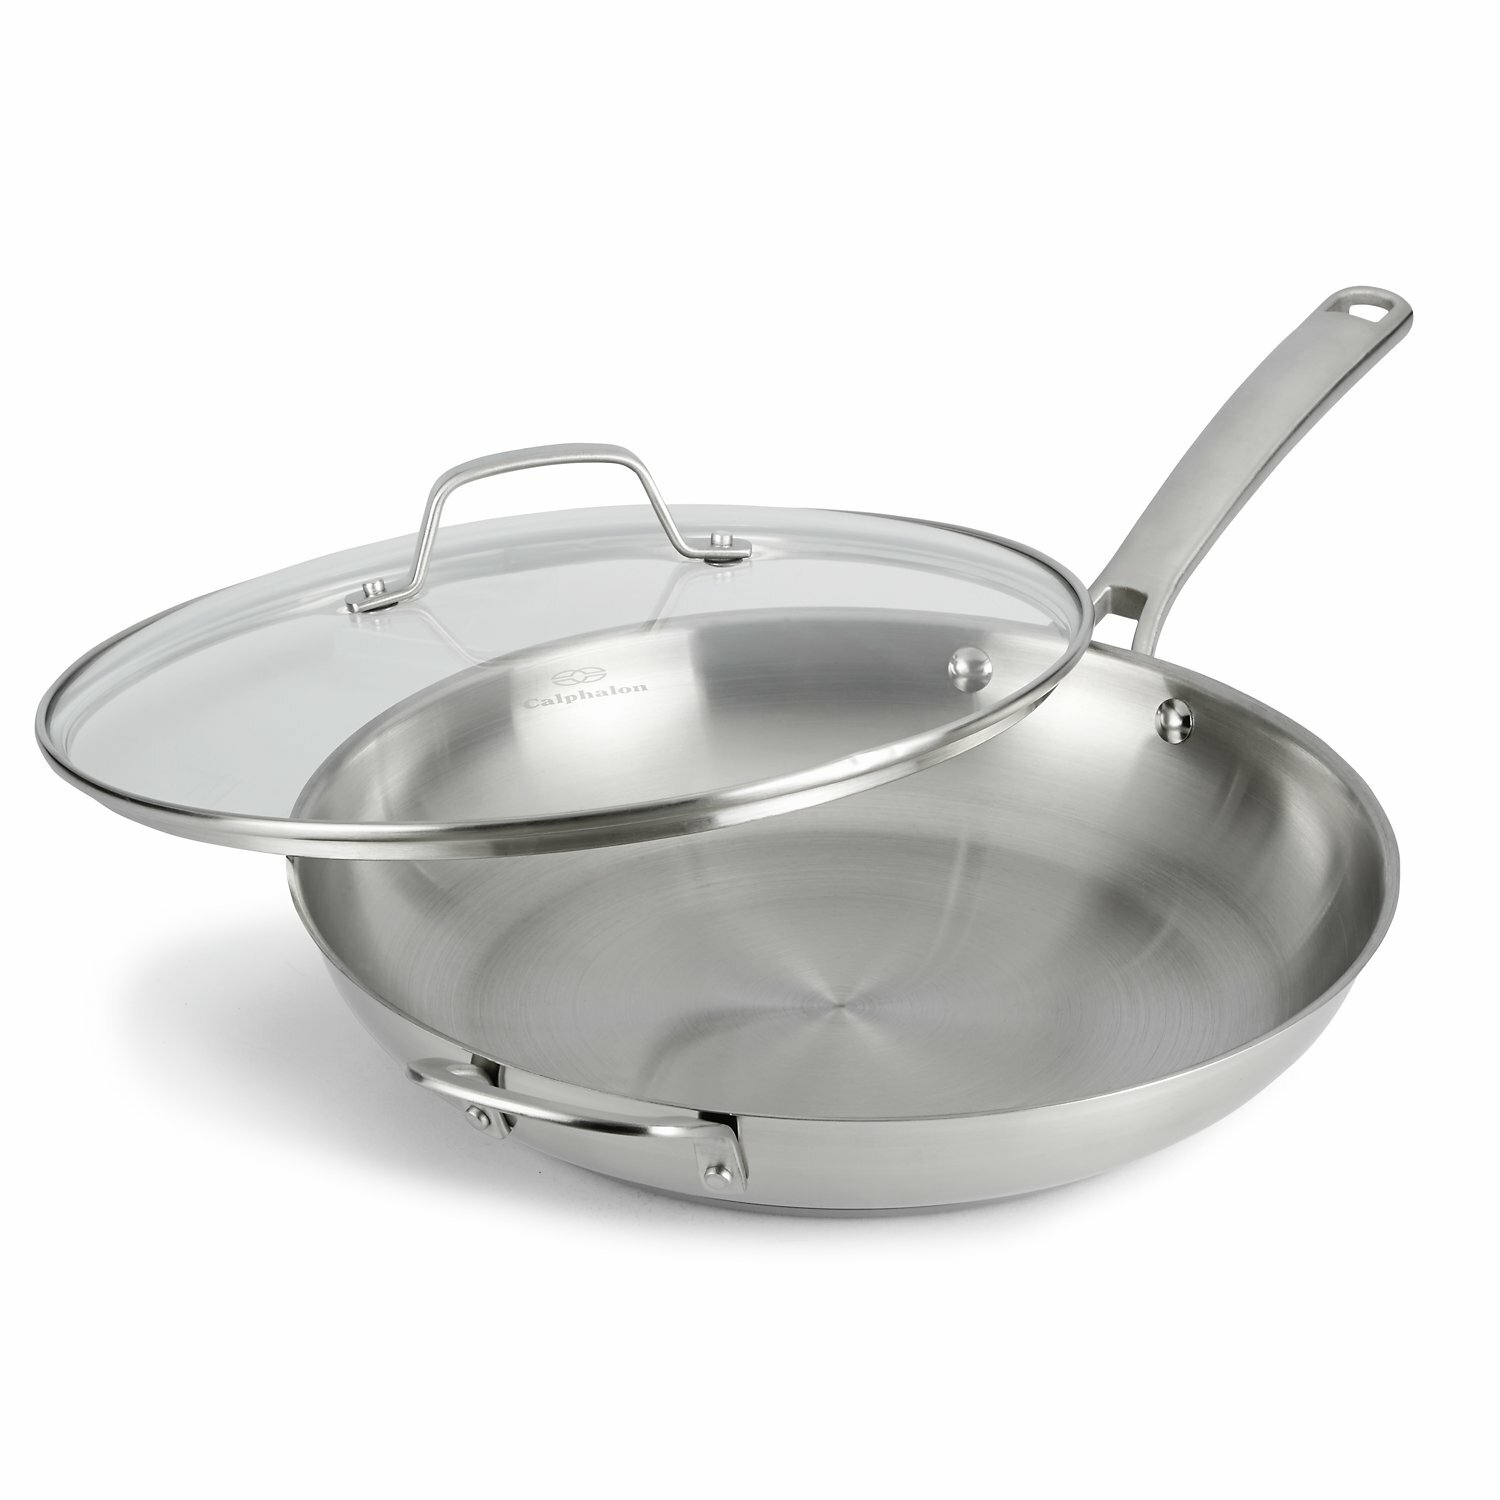 "Frying Pan: Calphalon Stainless Steel 12"" Frying Pan With Lid"